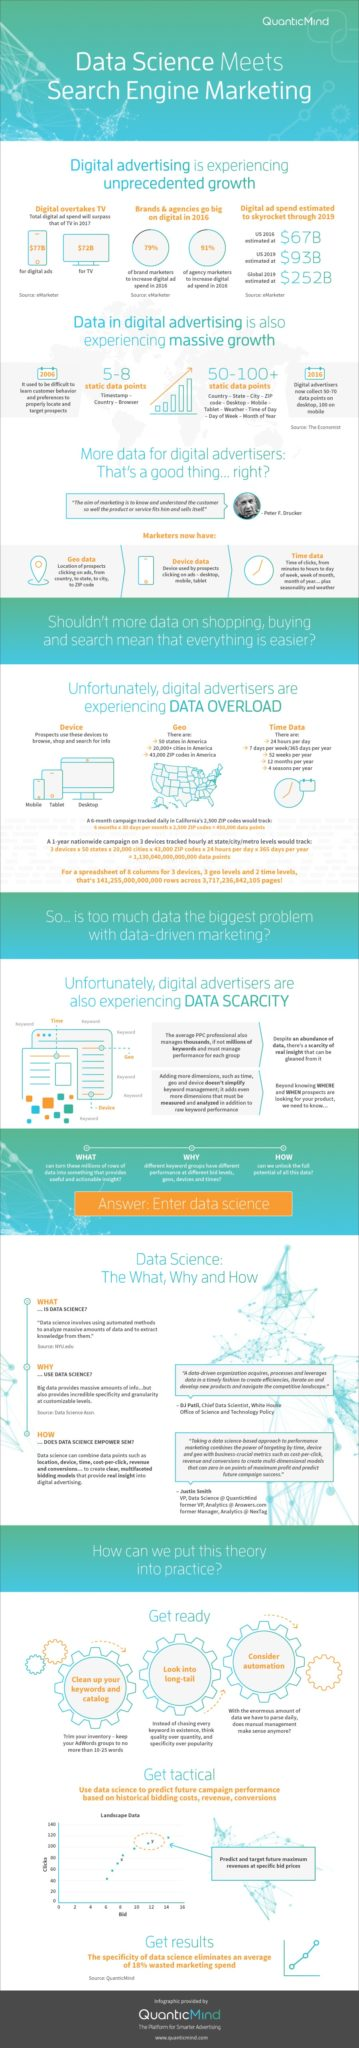 [Infographic] Data Science Meets SEM